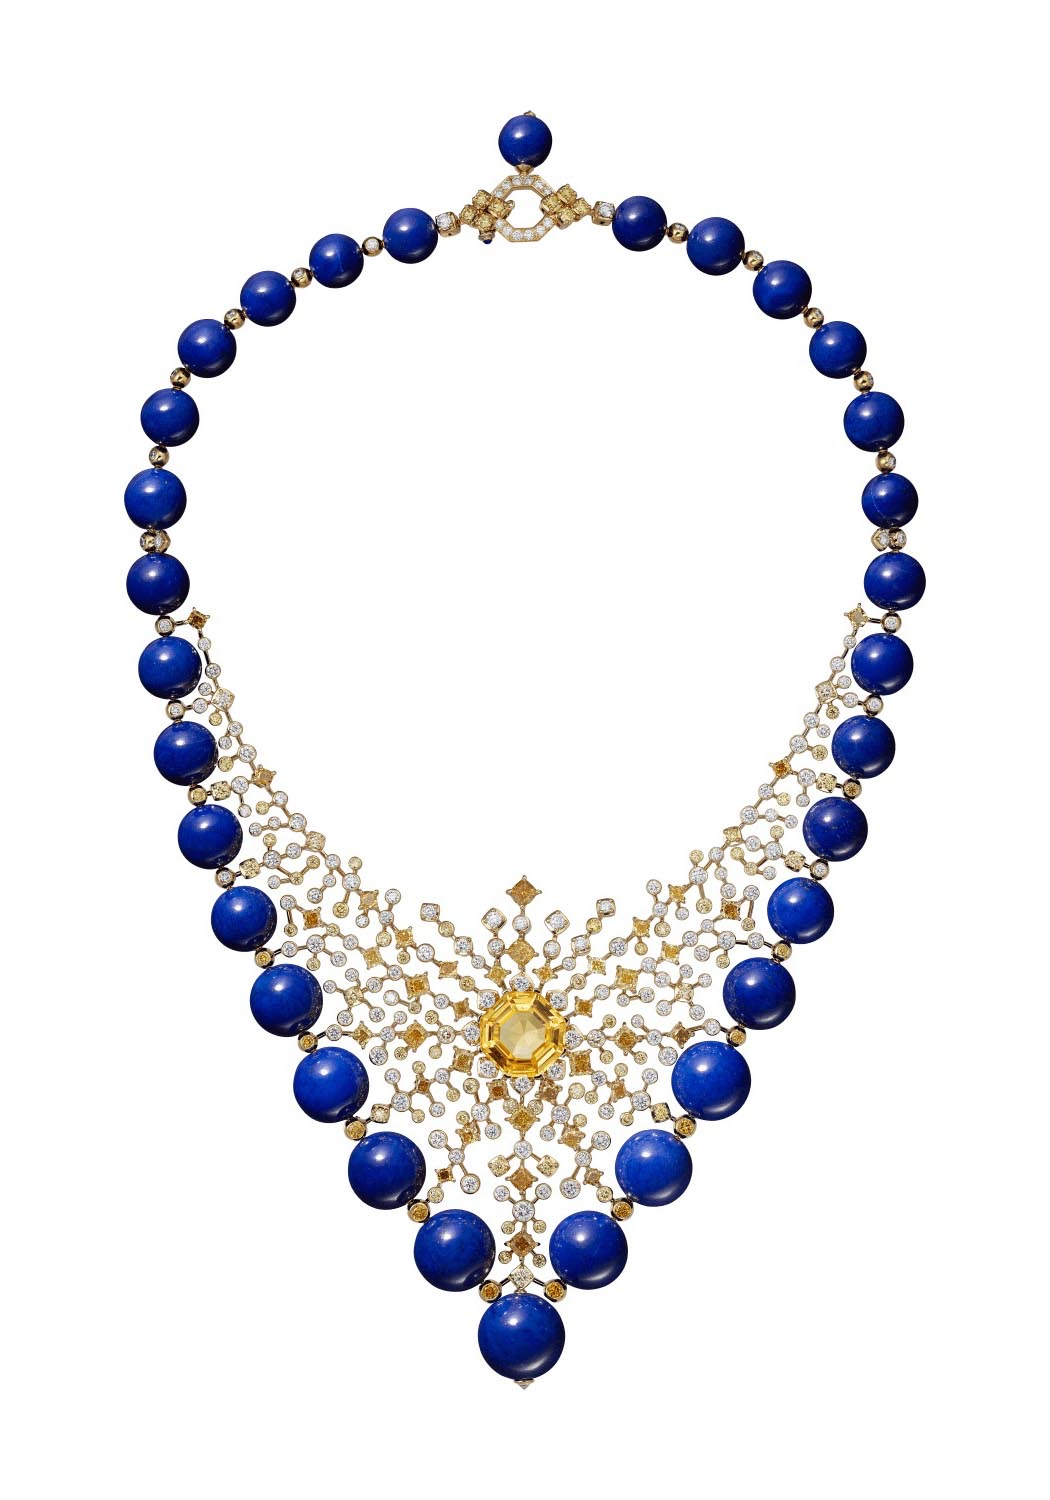 Cartier Magnitude High Jewelry necklace composed of 18K yellow gold, a 15.48-carat octagonal yellow sapphire from Ceylon, lapis lazuli beads, yellow and orange cushion-shaped diamonds, yellow, orange, and white brilliant-cut diamonds. Photo courtesy